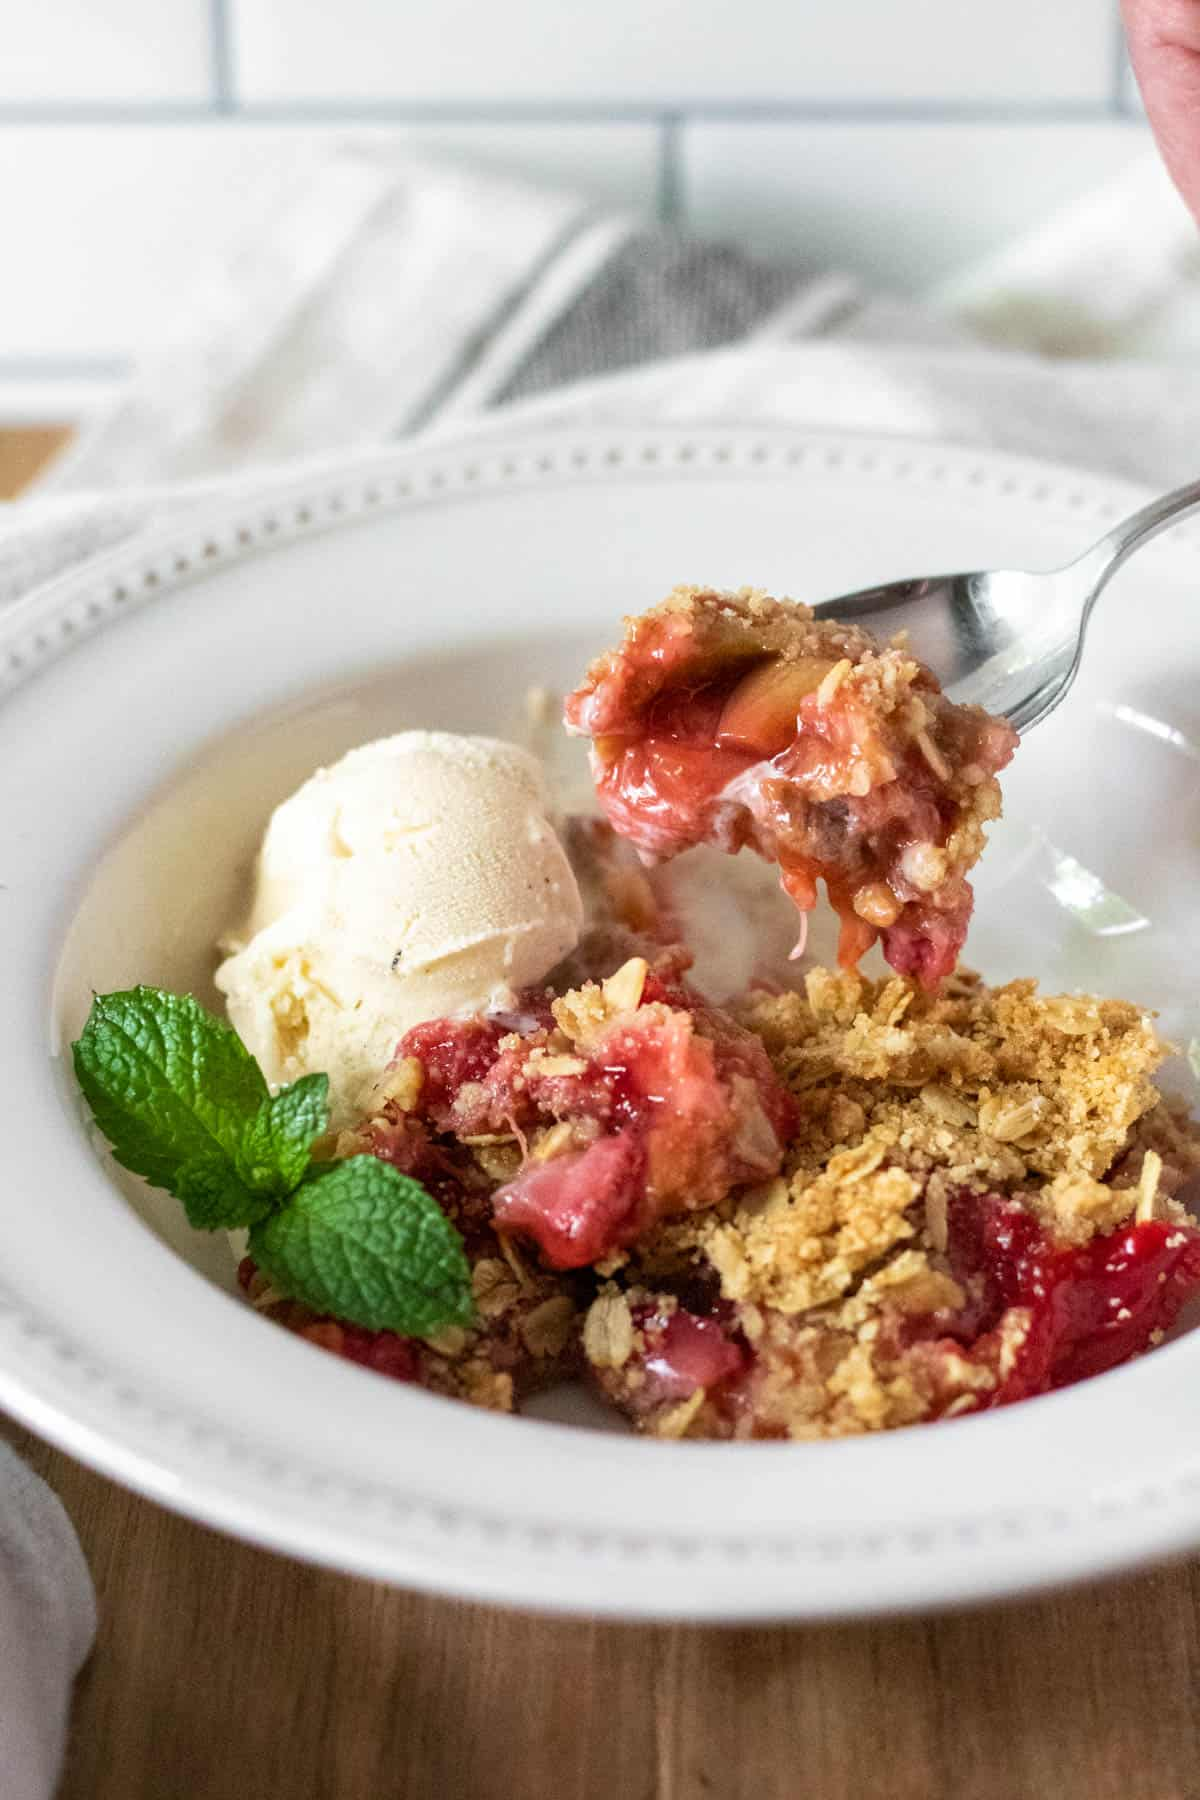 Spoonful of strawberry rhubarb crisp coming out of bowl with scoop of ice cream.